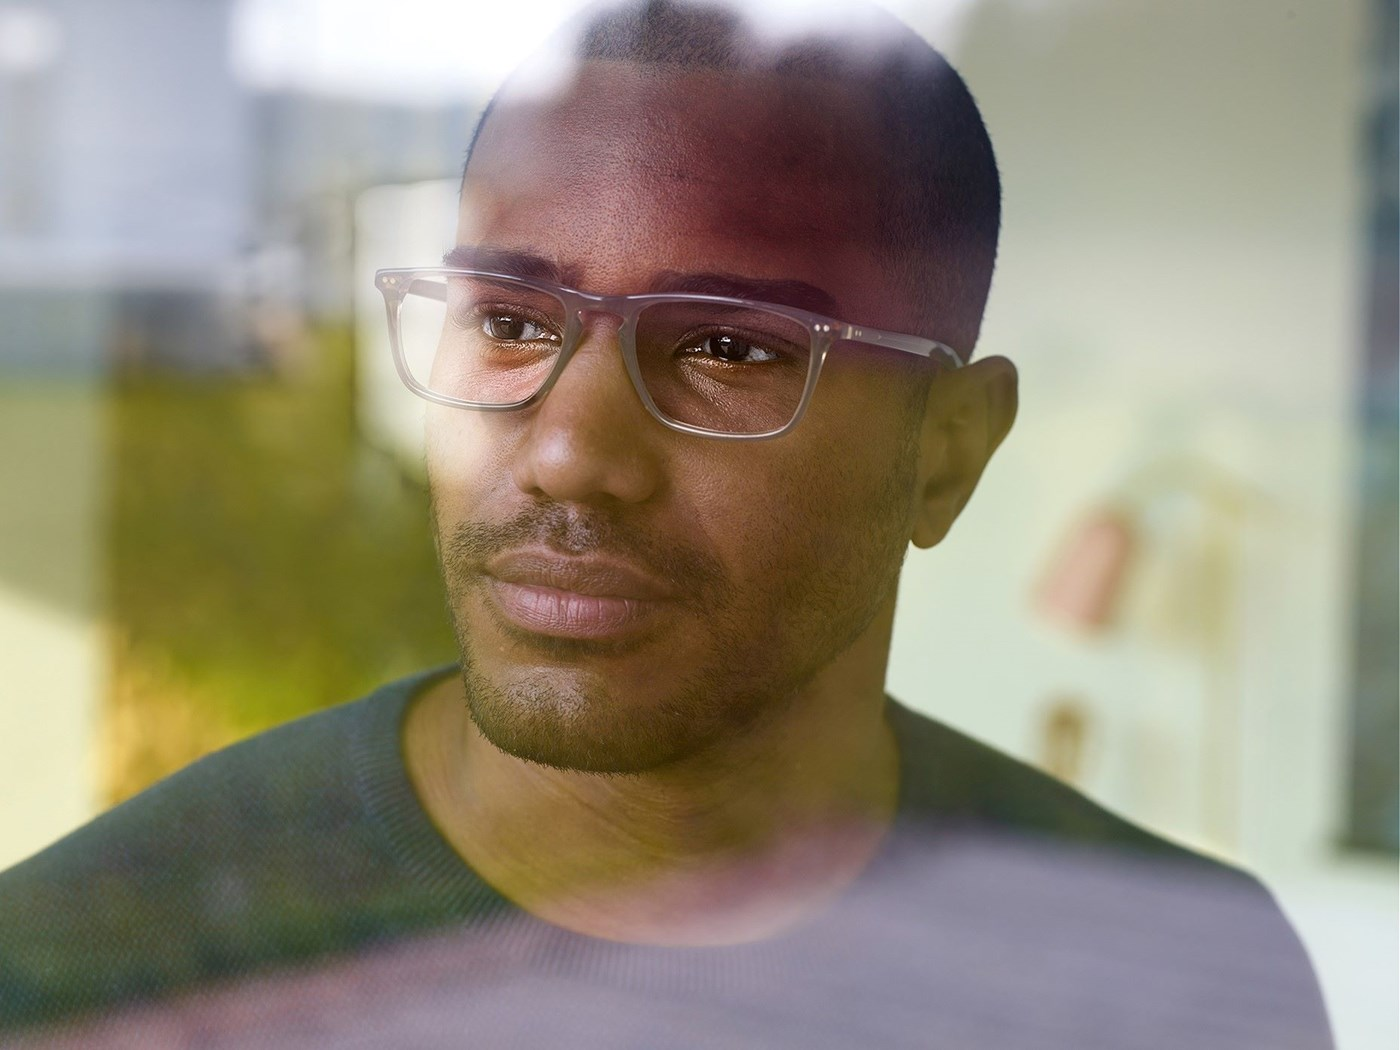 Male wearing eyeglasses with Hoya Vision lenses looking out a window